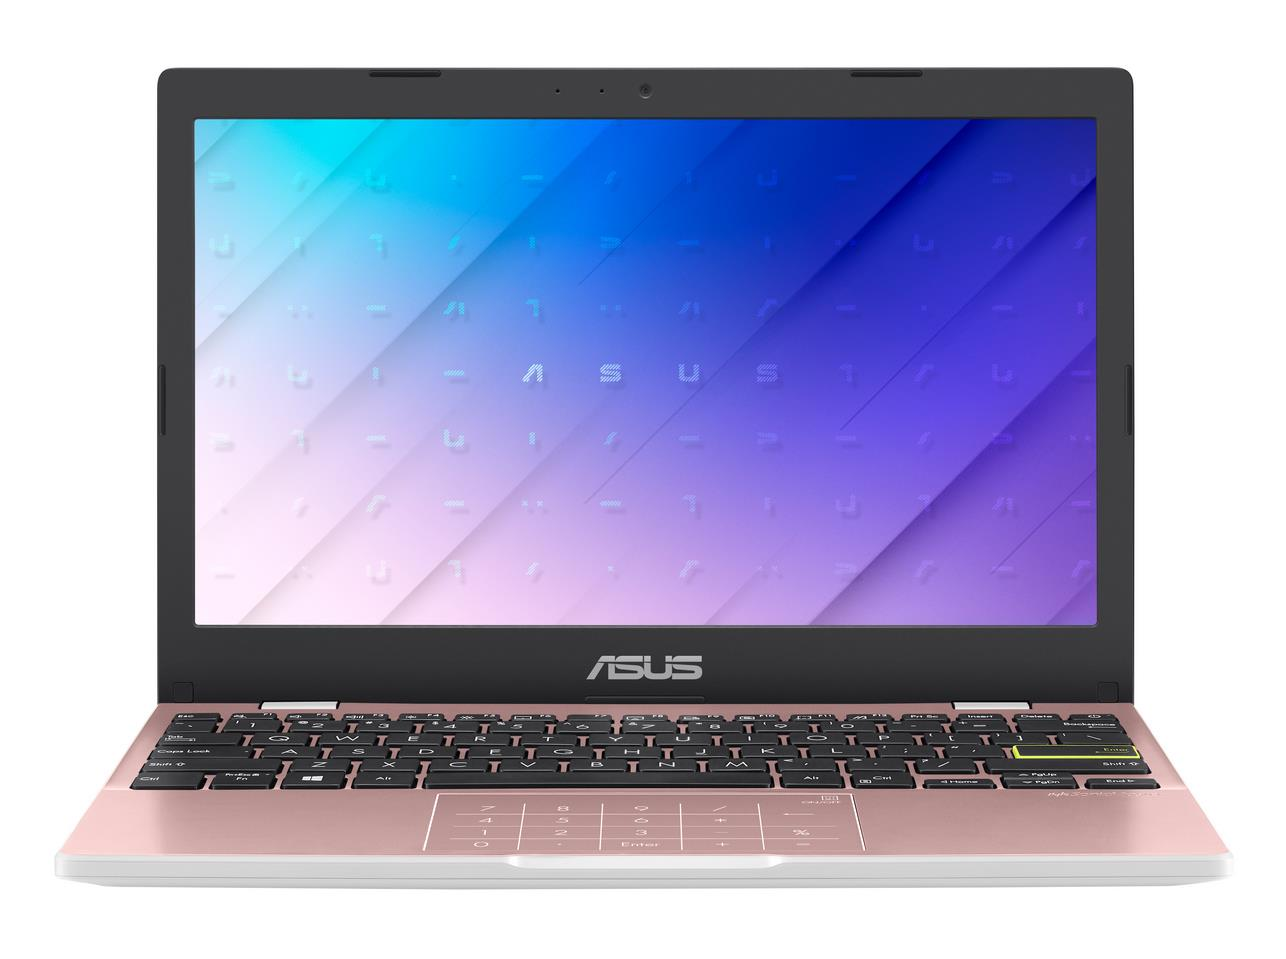 "E210MA-GJ002TS ASUS Laptop E210MA - 11,6"" HD/Celeron N4020/4GB/64G eMMC/W10 Home in S Mode (Rose Gold/Plastic)"